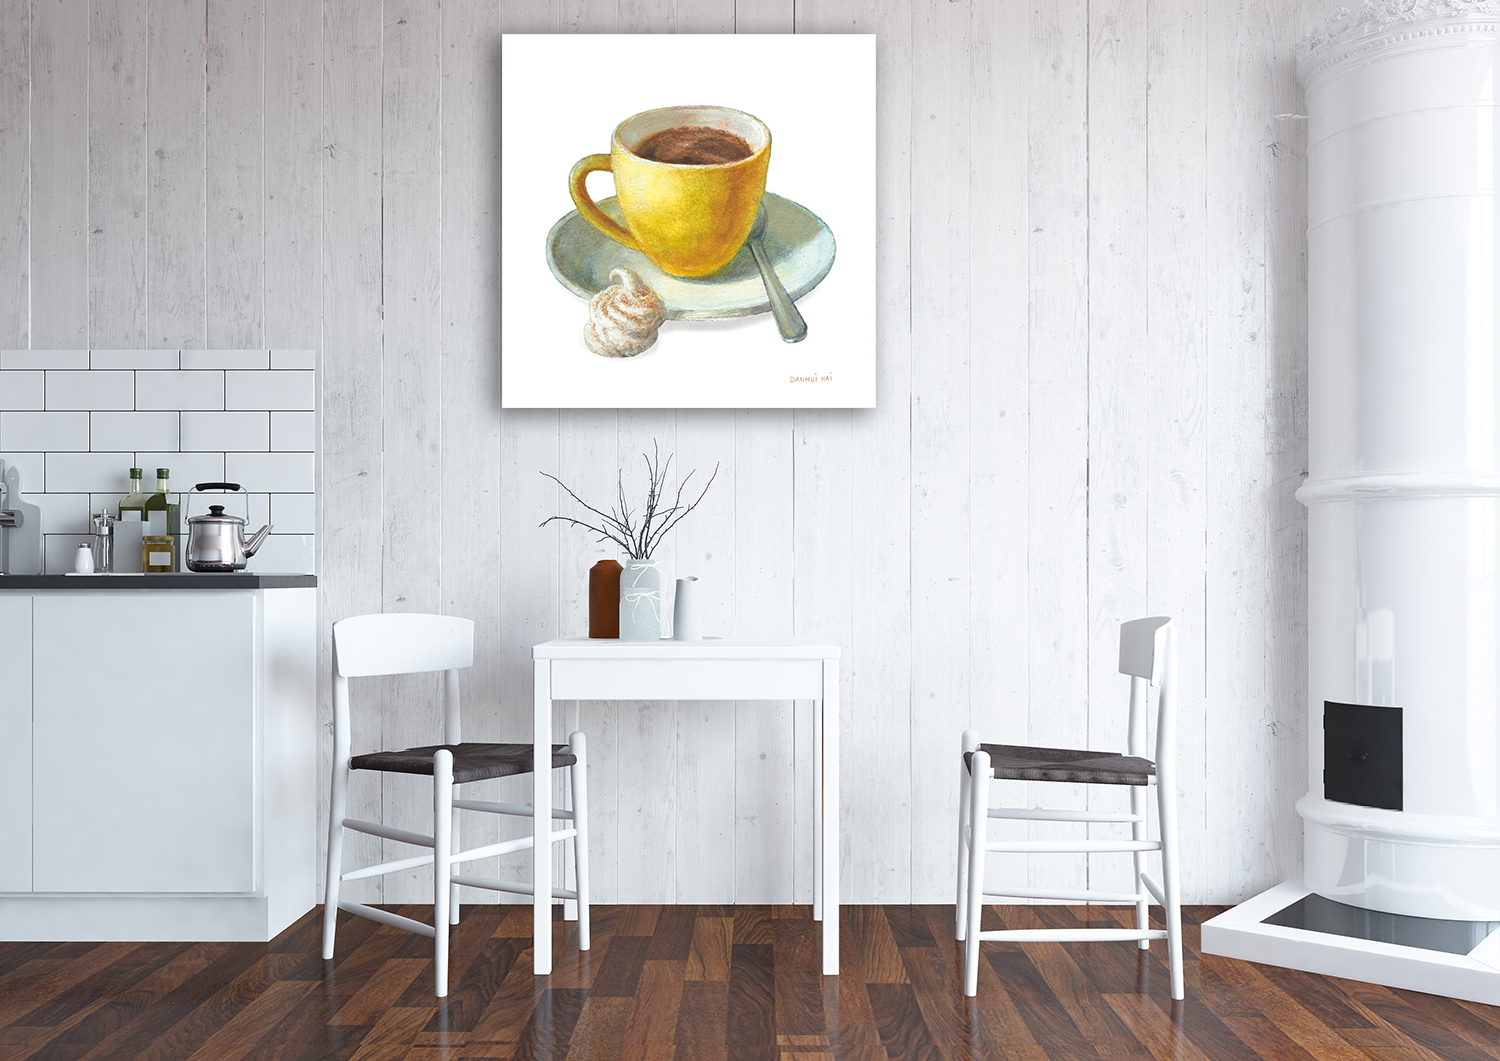 Dining Room Print on Canvas